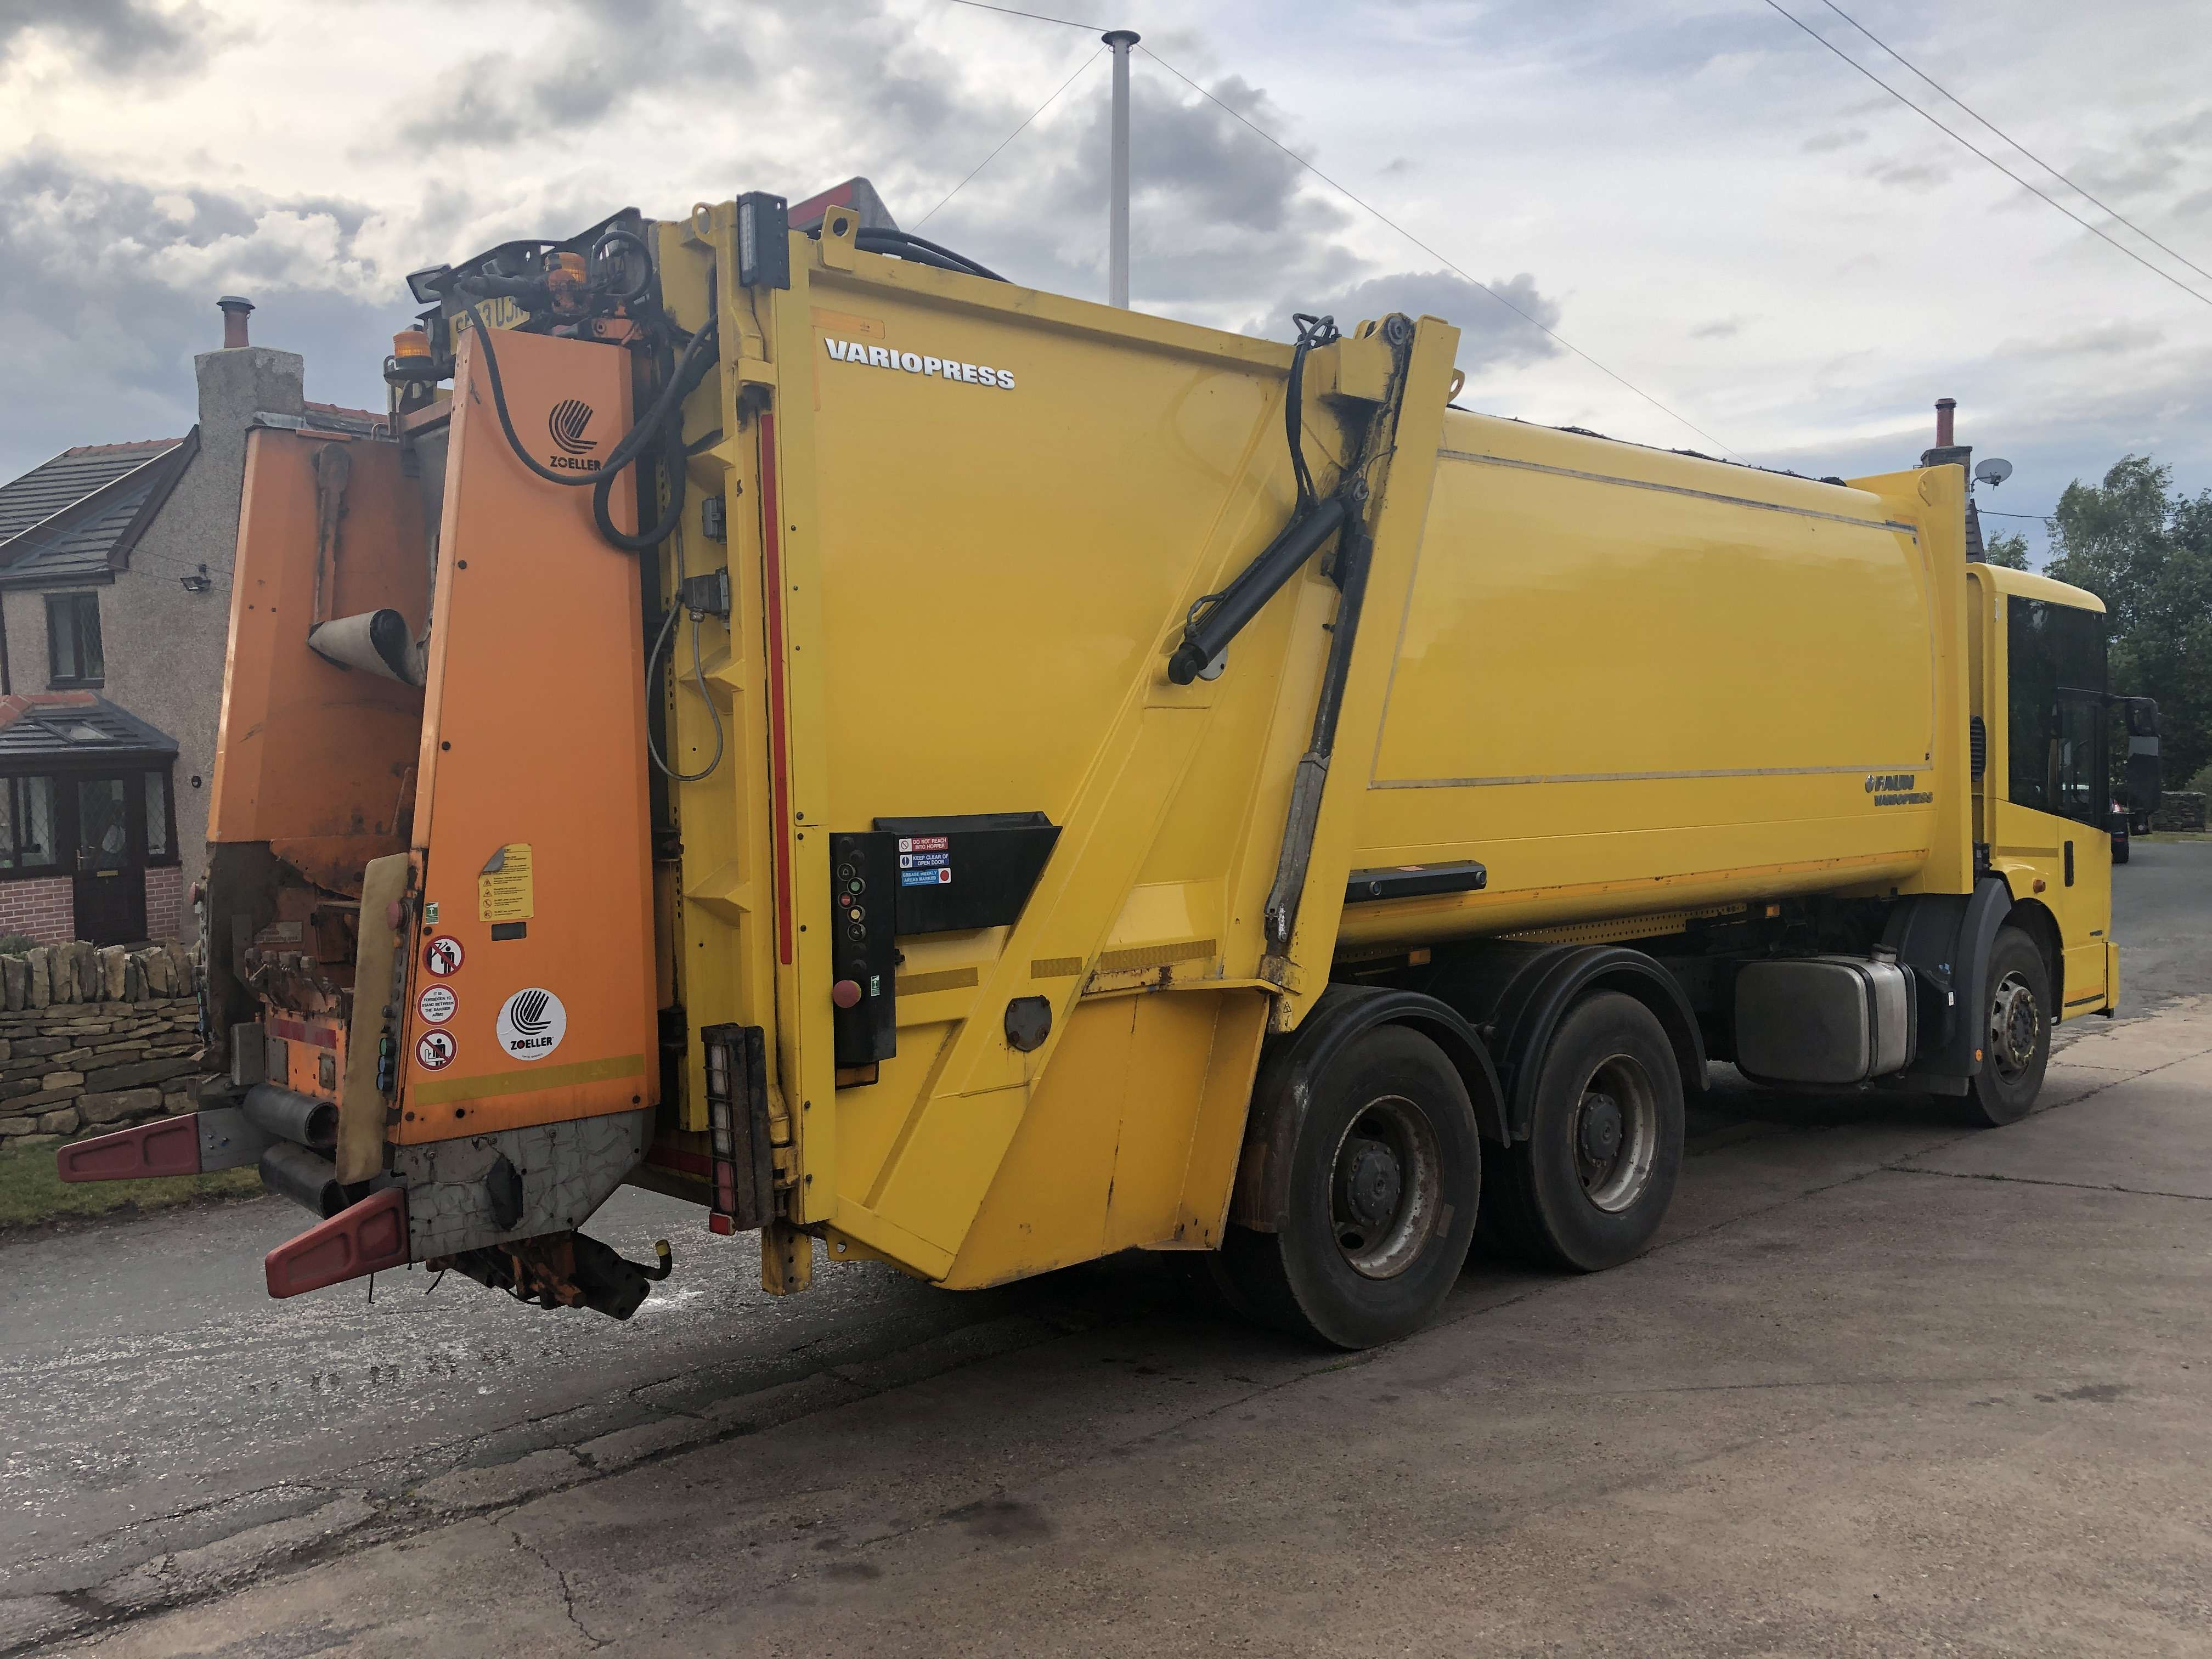 2013 Mercedes Econic refuse truck for sale 3